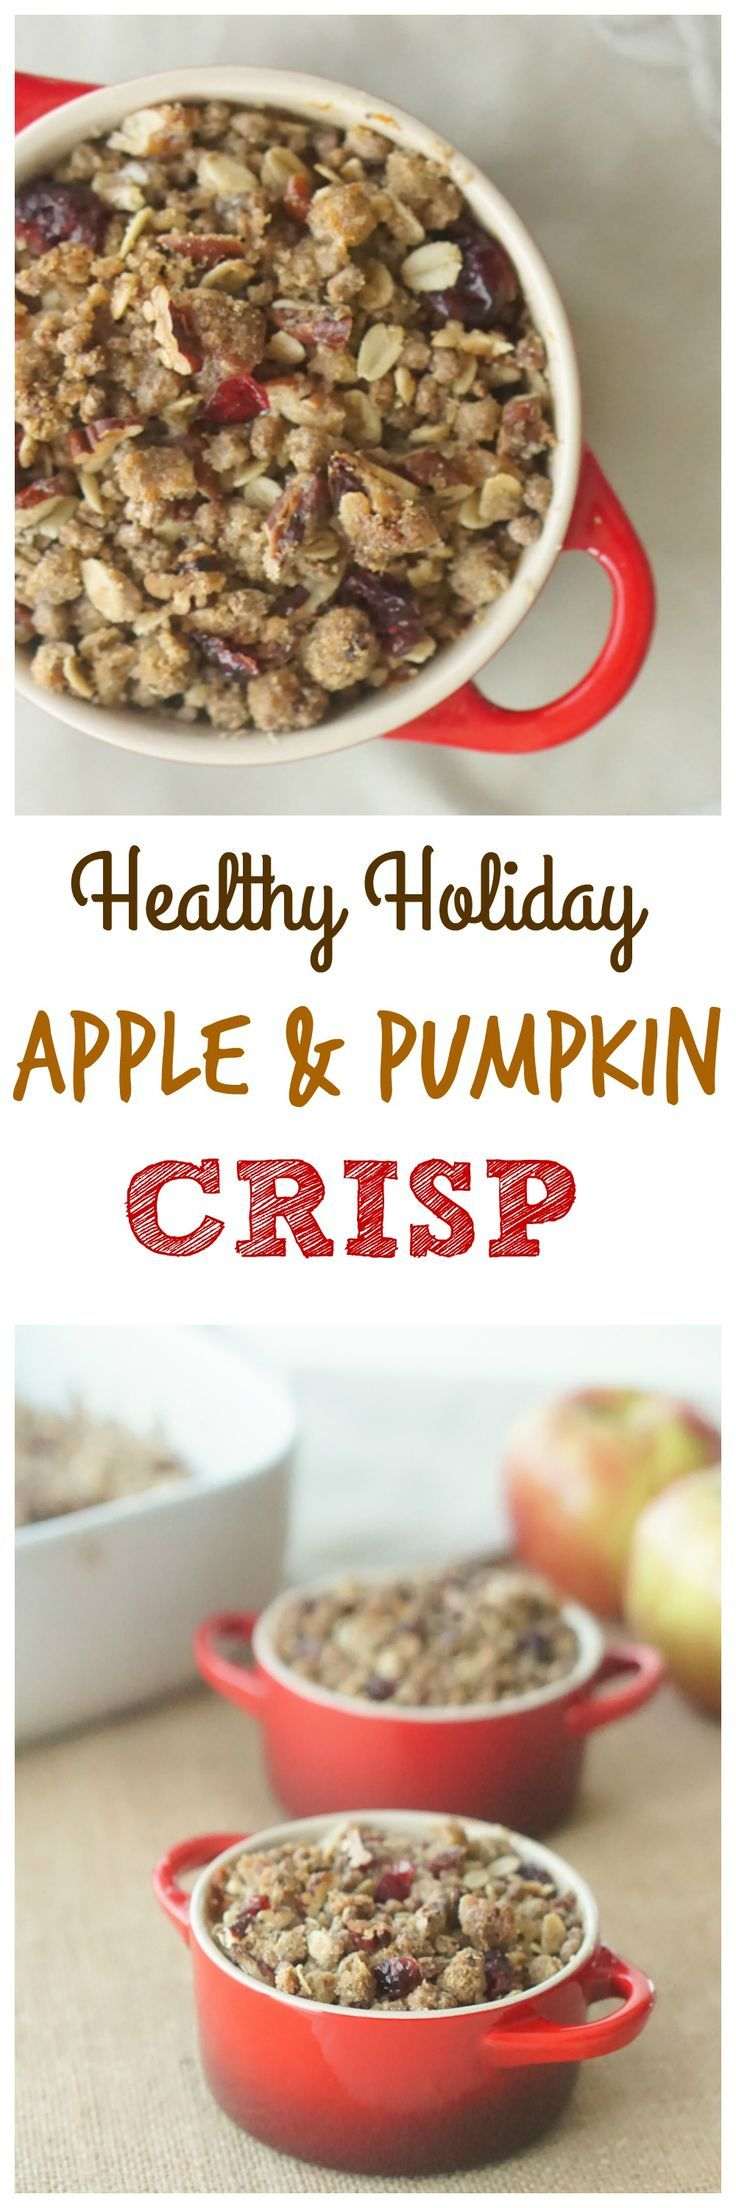 ... on Pinterest | Pumpkin pies, Poached pears and Healthy pumpkin recipes